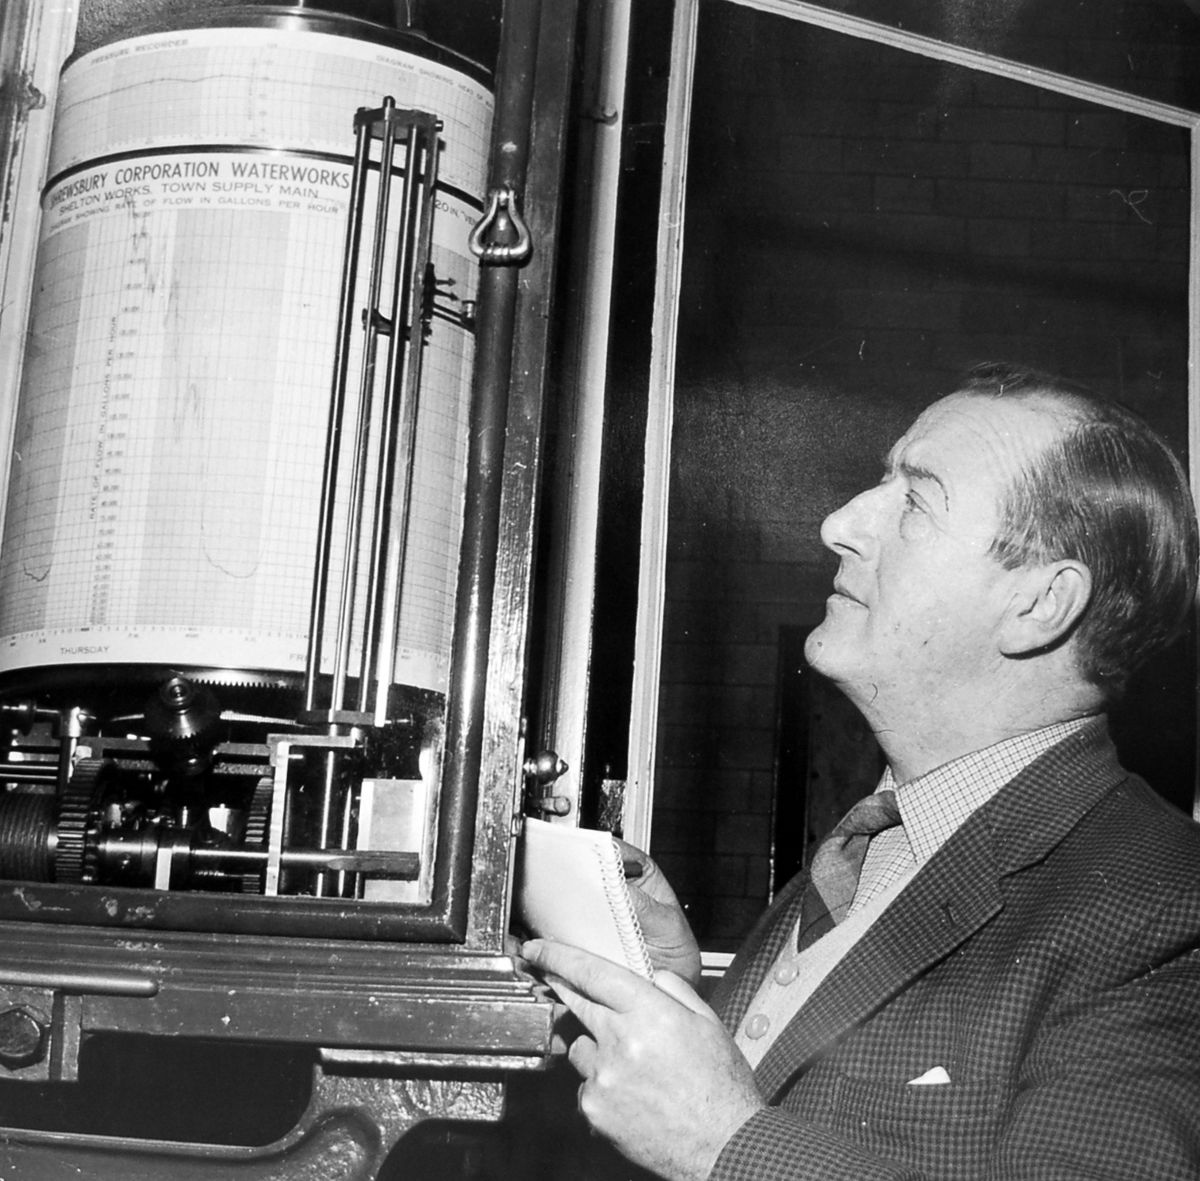 """The horrifying readout from this 20-inch Venturi meter showed that 500,000 gallons of water were running to waste each day in Shrewsbury as a result of burst mains and pipes throughout the town. Taking a note of consumption figures in January 1962 was Mr B Egan, assistant water engineer at Shrewsbury. """"It is to be hoped that in a few days the reading might well be back to normal,"""" said the original caption."""